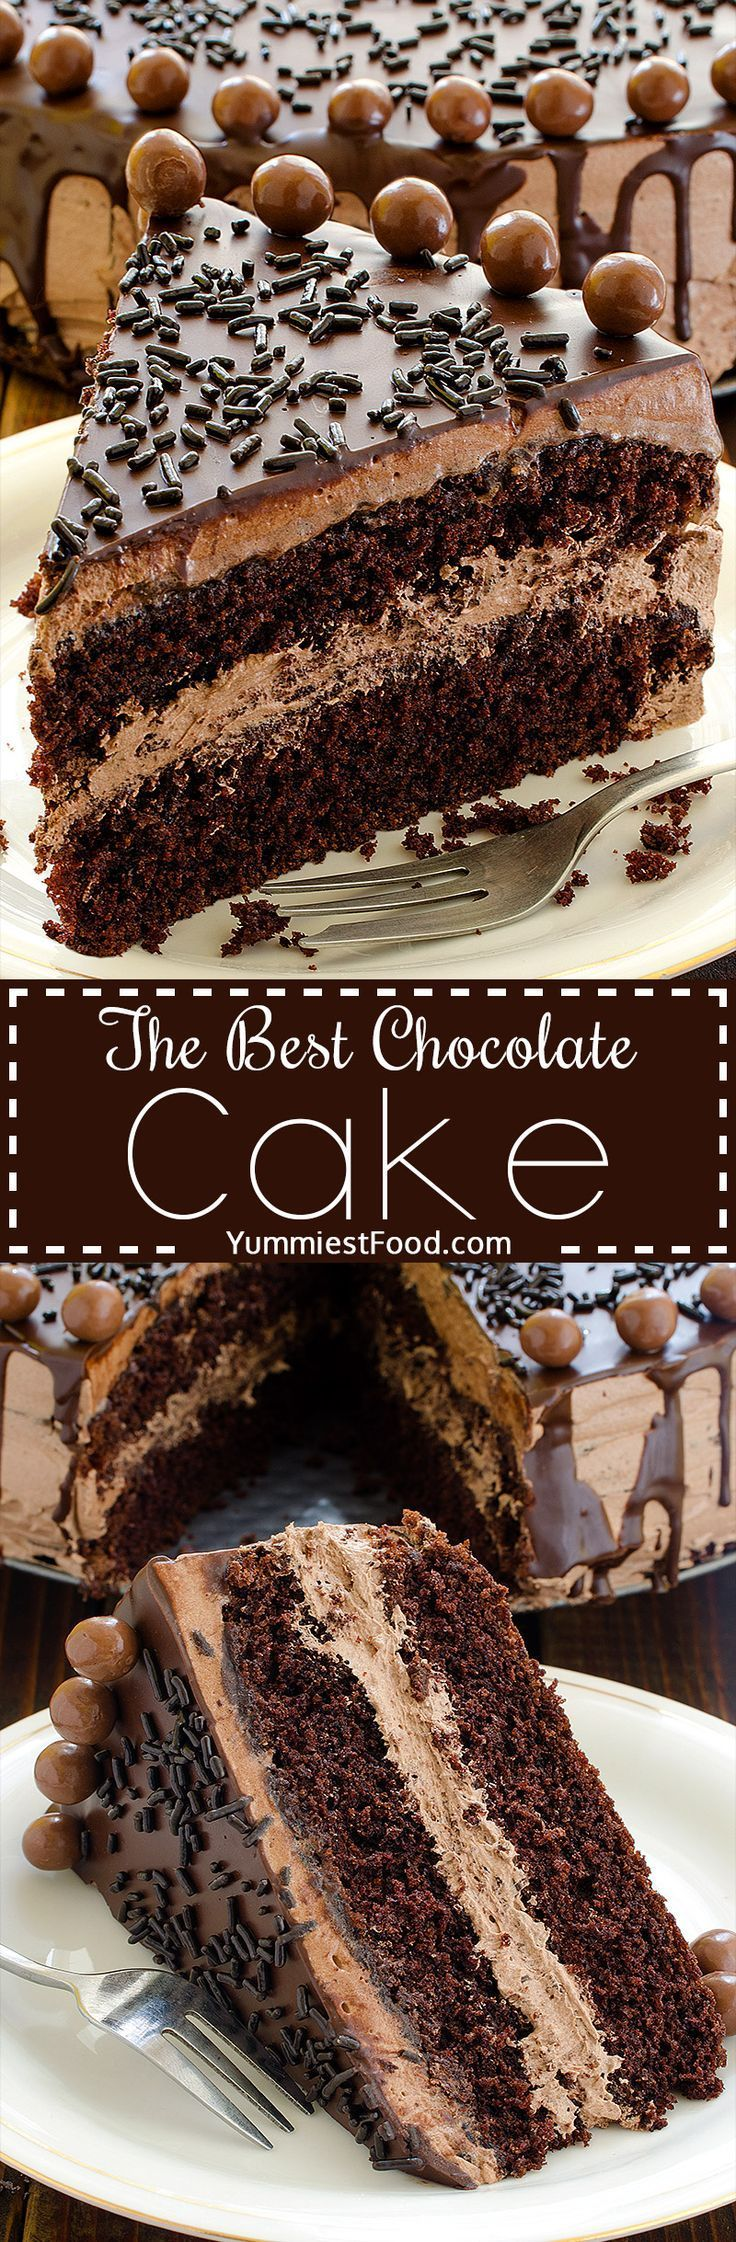 The BEST Chocolate Cake - perfect cake for chocolate lovers! Soft, tasty and very creamy!